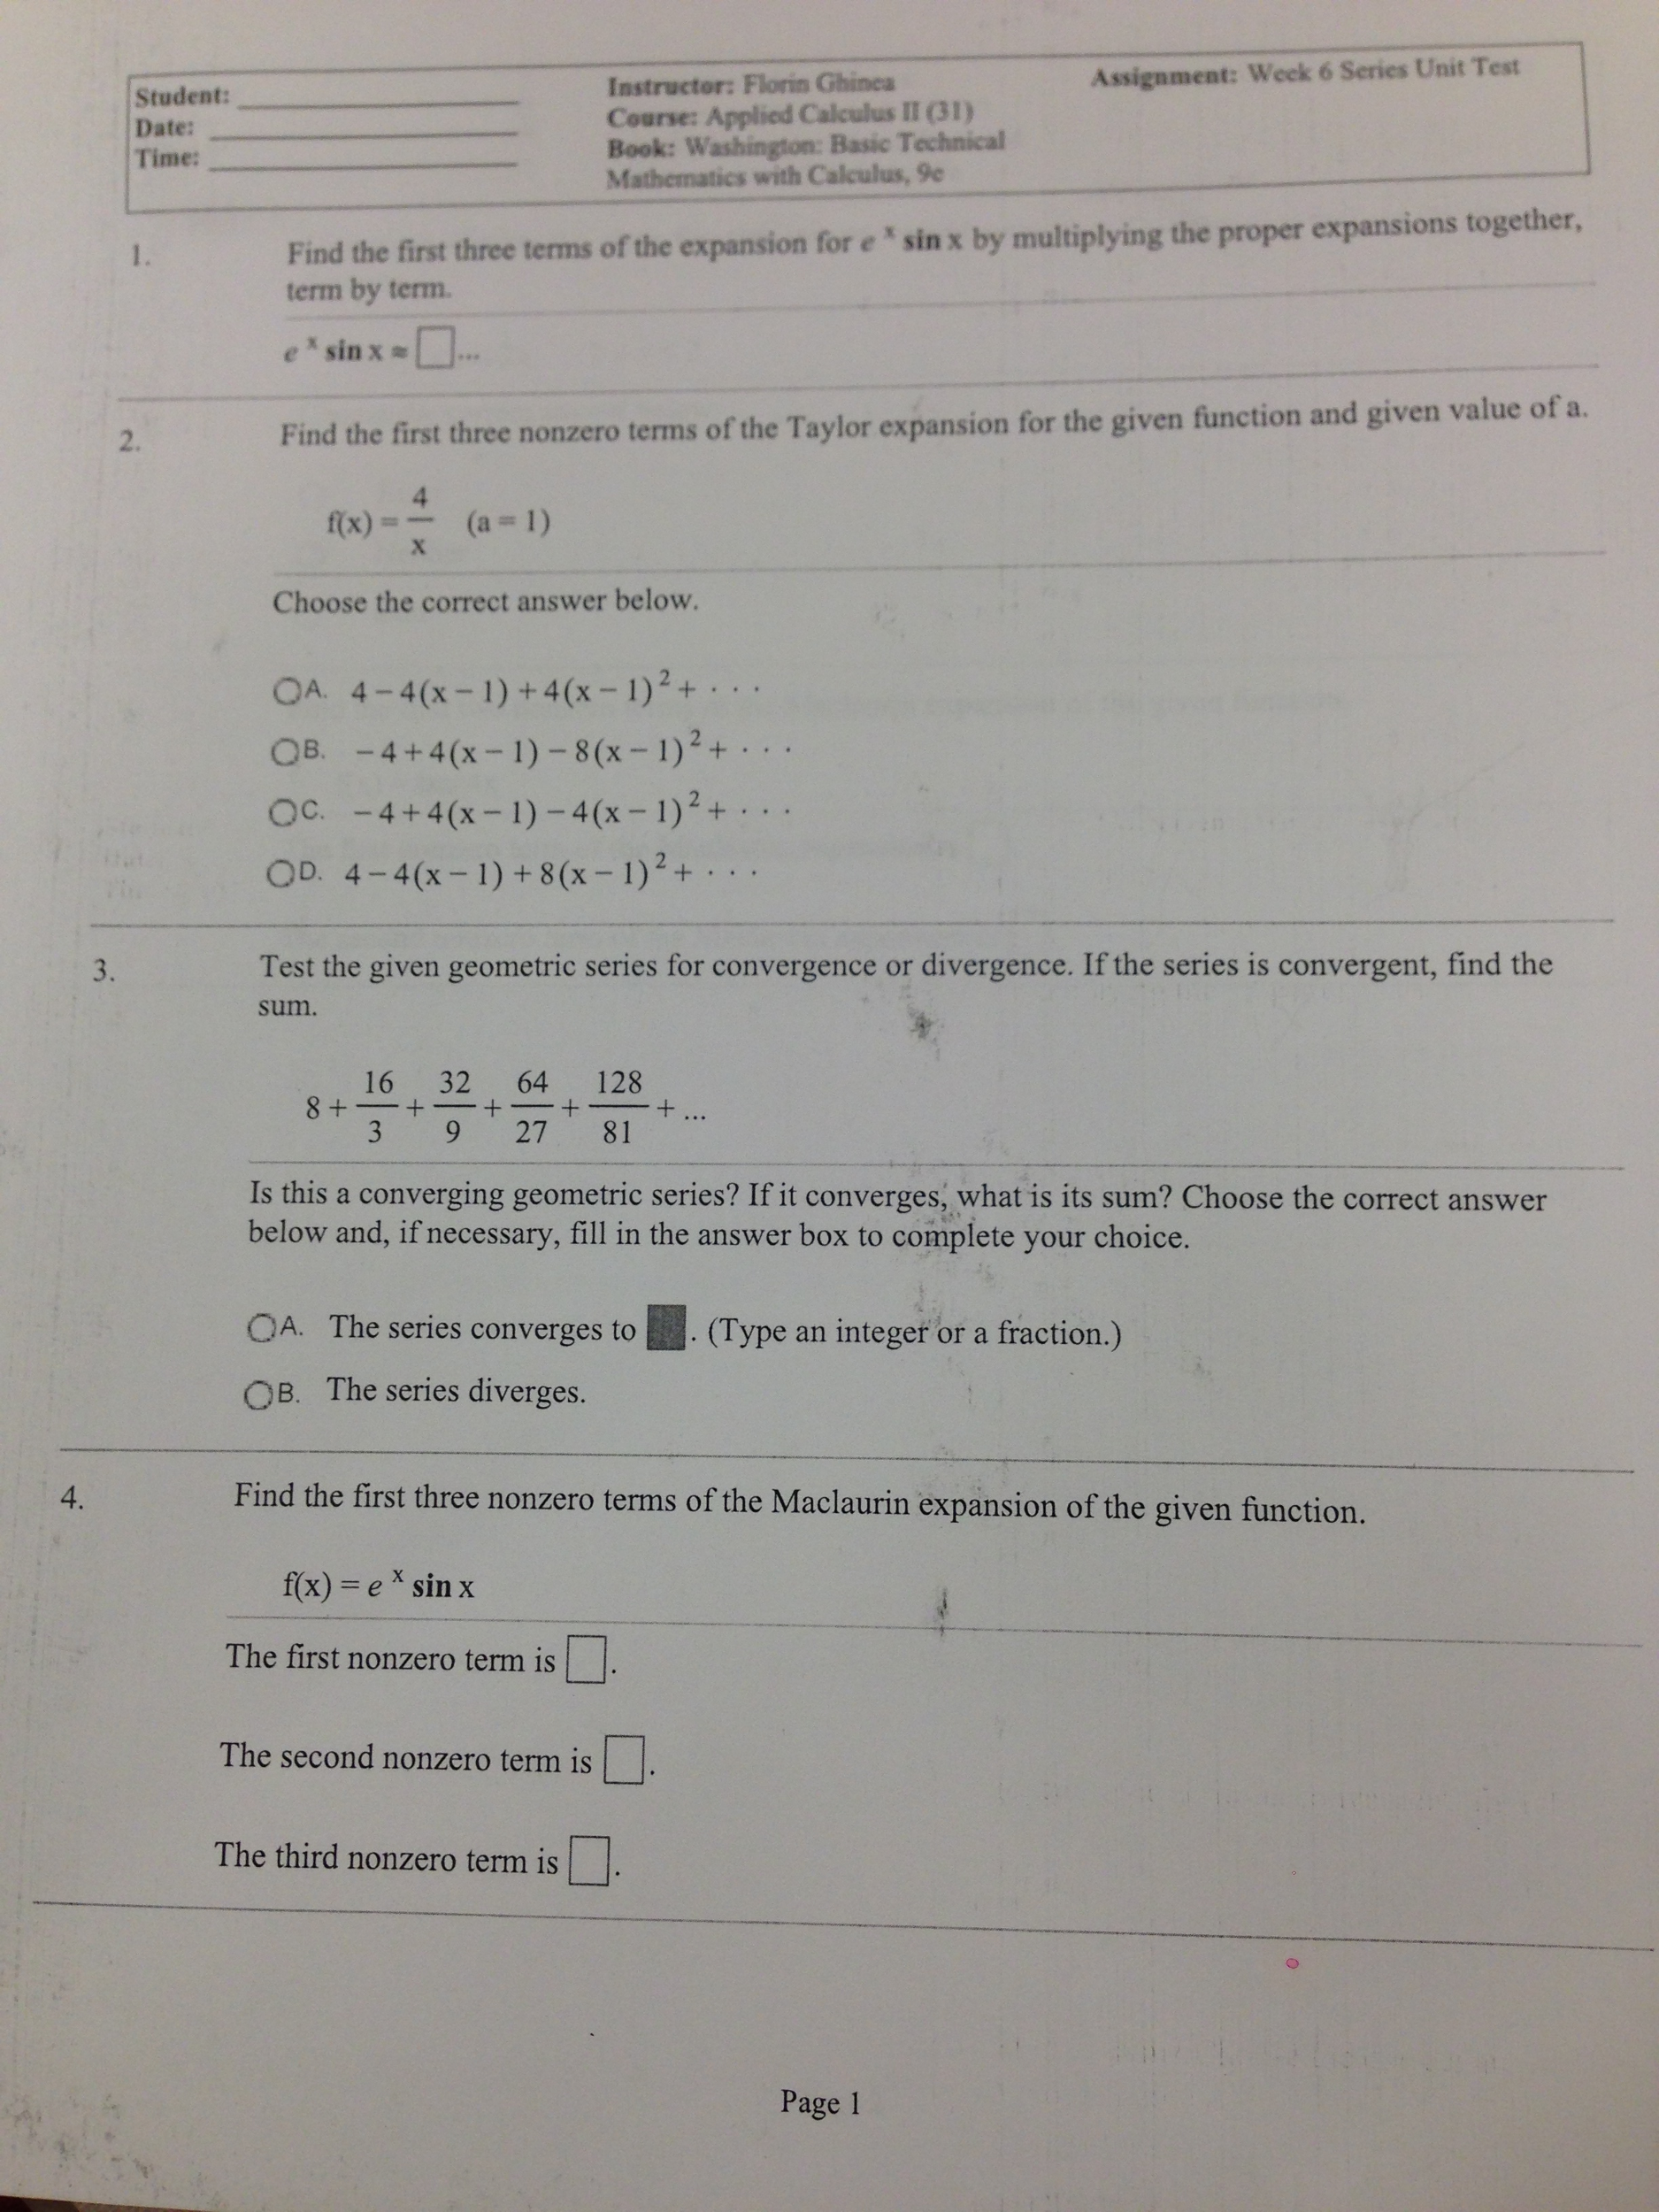 Find The First Three Terms Of The Expansion For Ex Sin X By Multiplying The  Proper